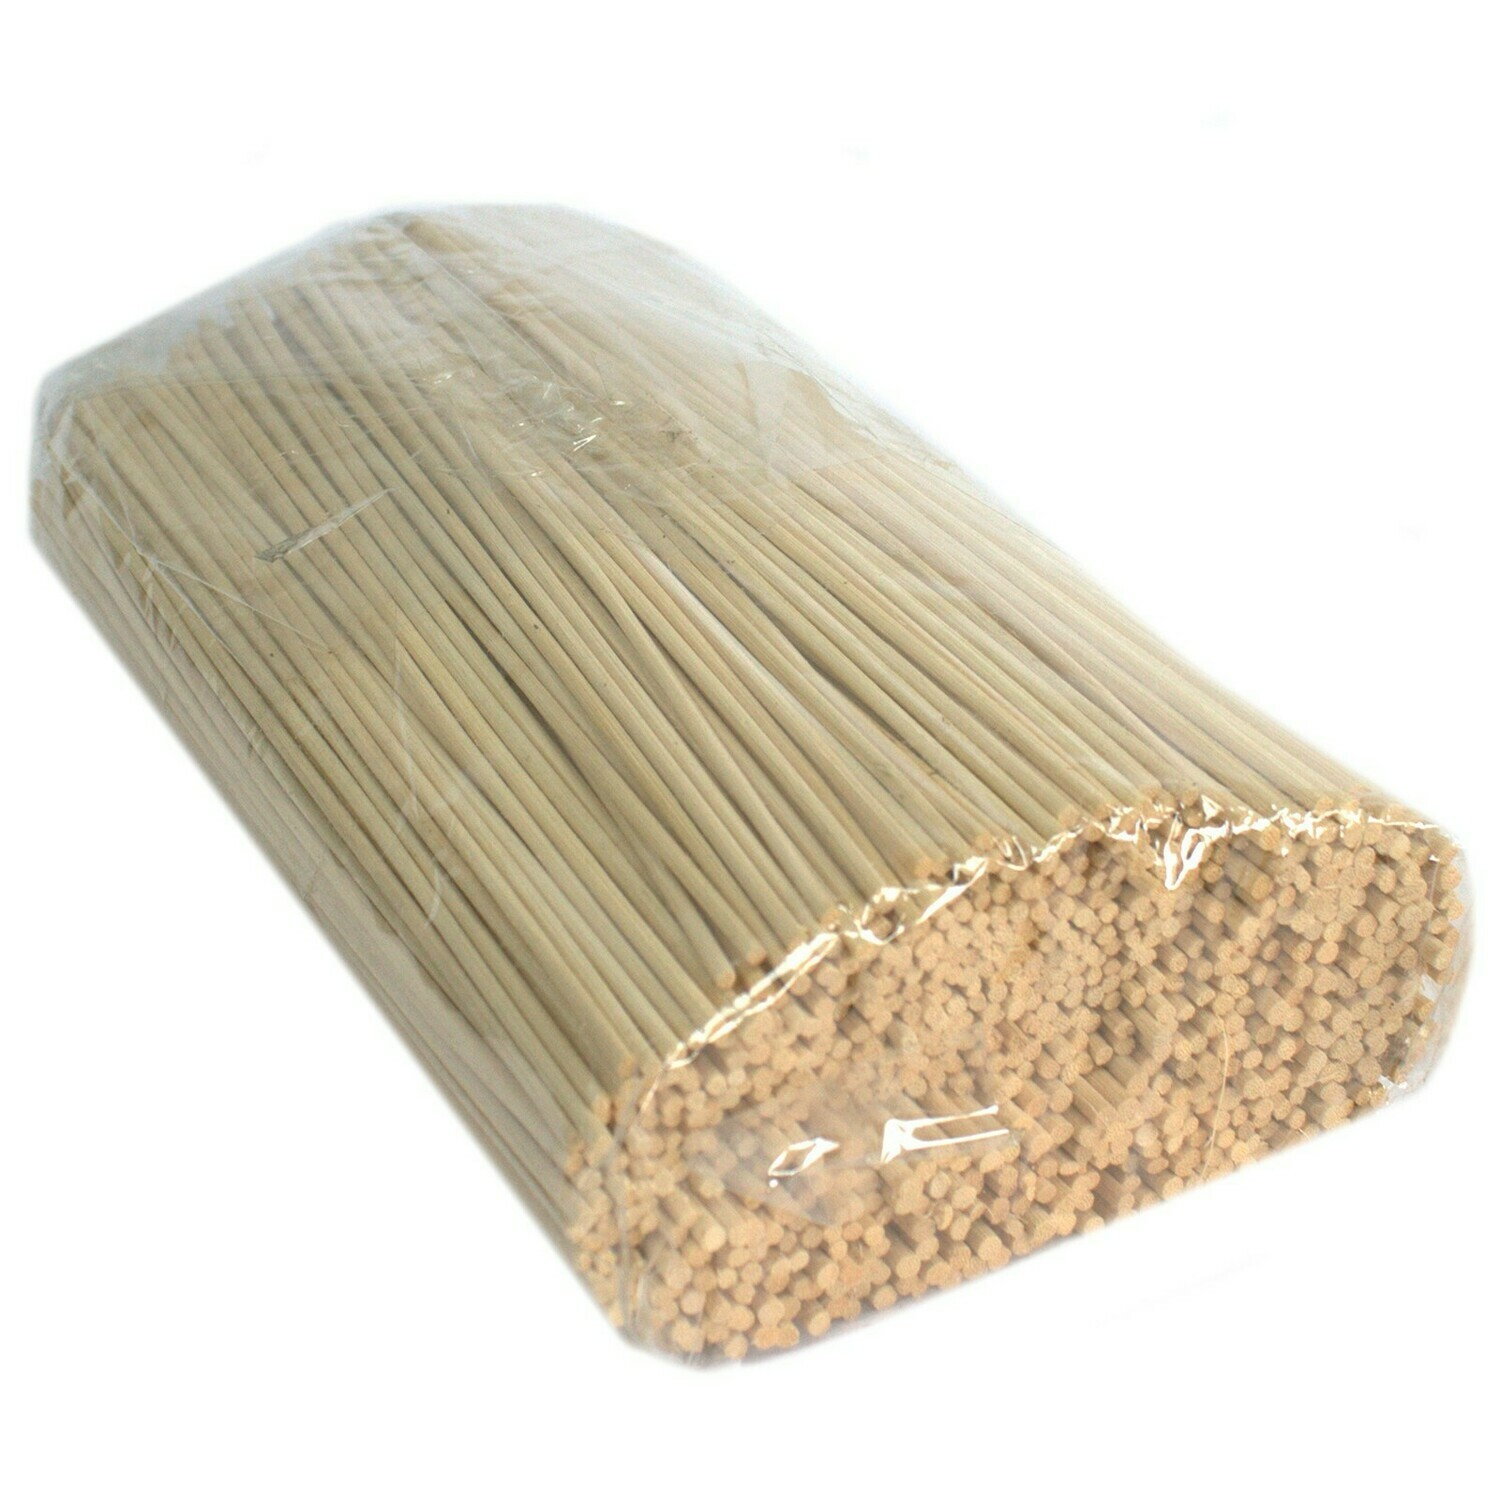 Spare Bamboo Reeds for Diffusers